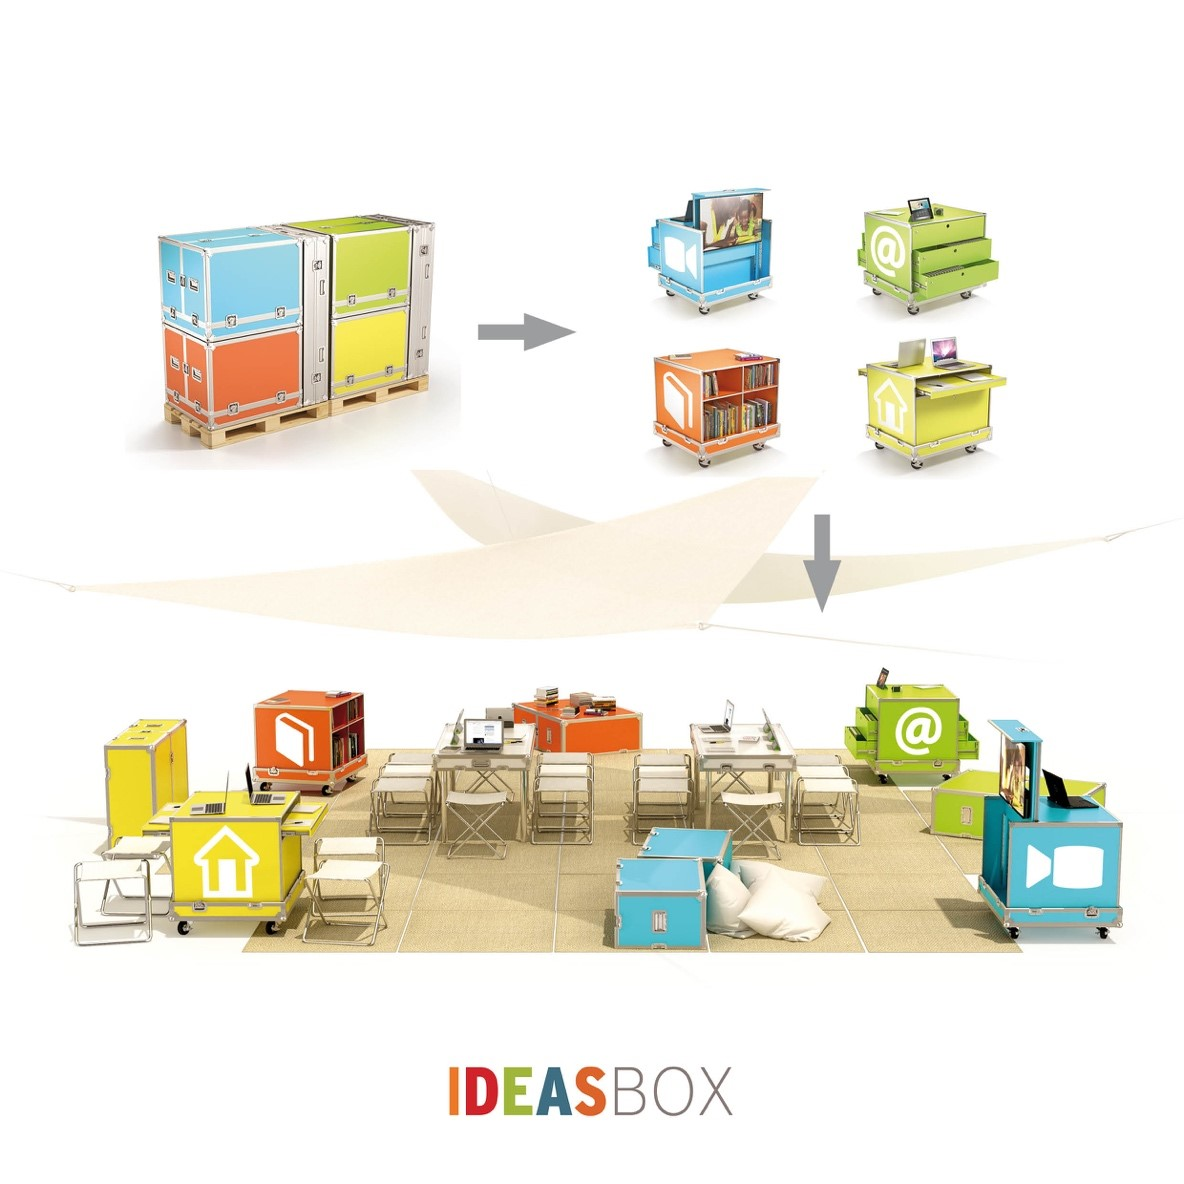 illustration of the idea box